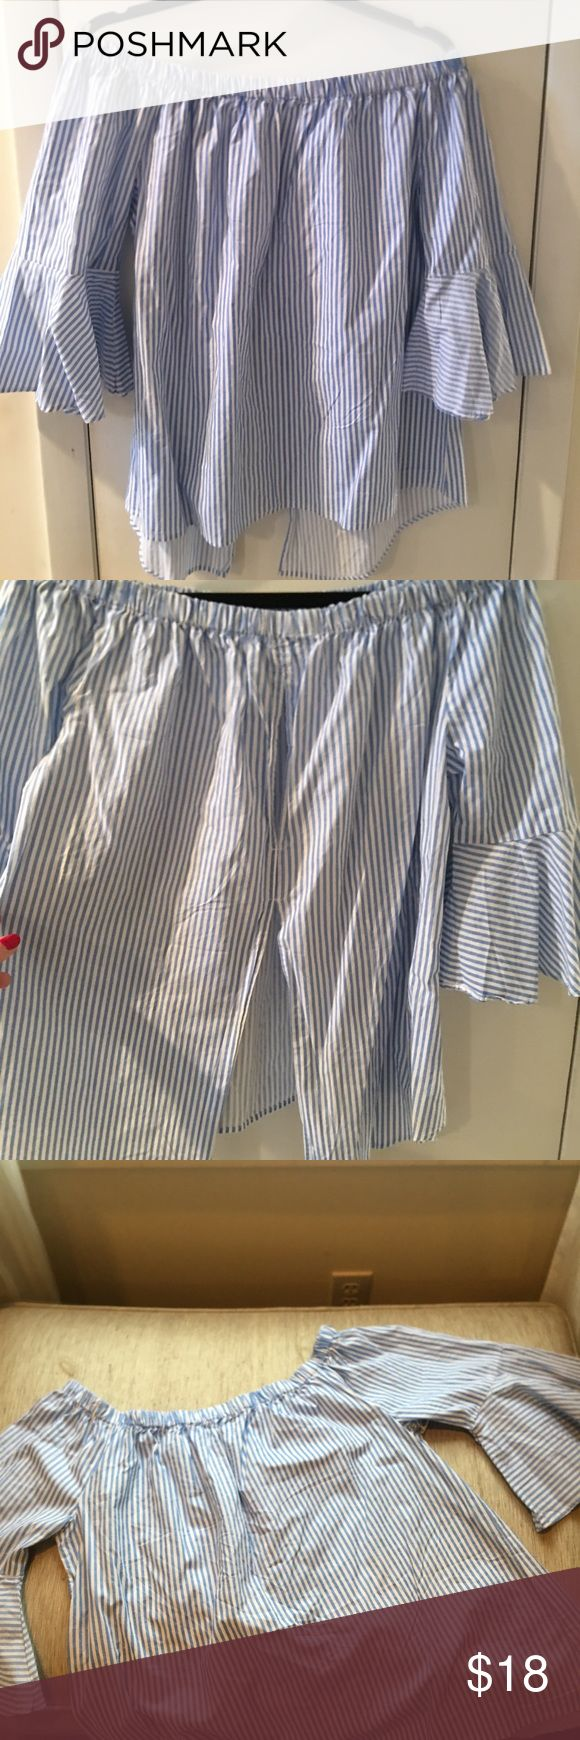 Pinstripe Bardot top Super cool blue and white off the shoulder top with a bell sleeve, small keyhole and a slit up the back, never worn with tags Live 4 Truth Tops Blouses